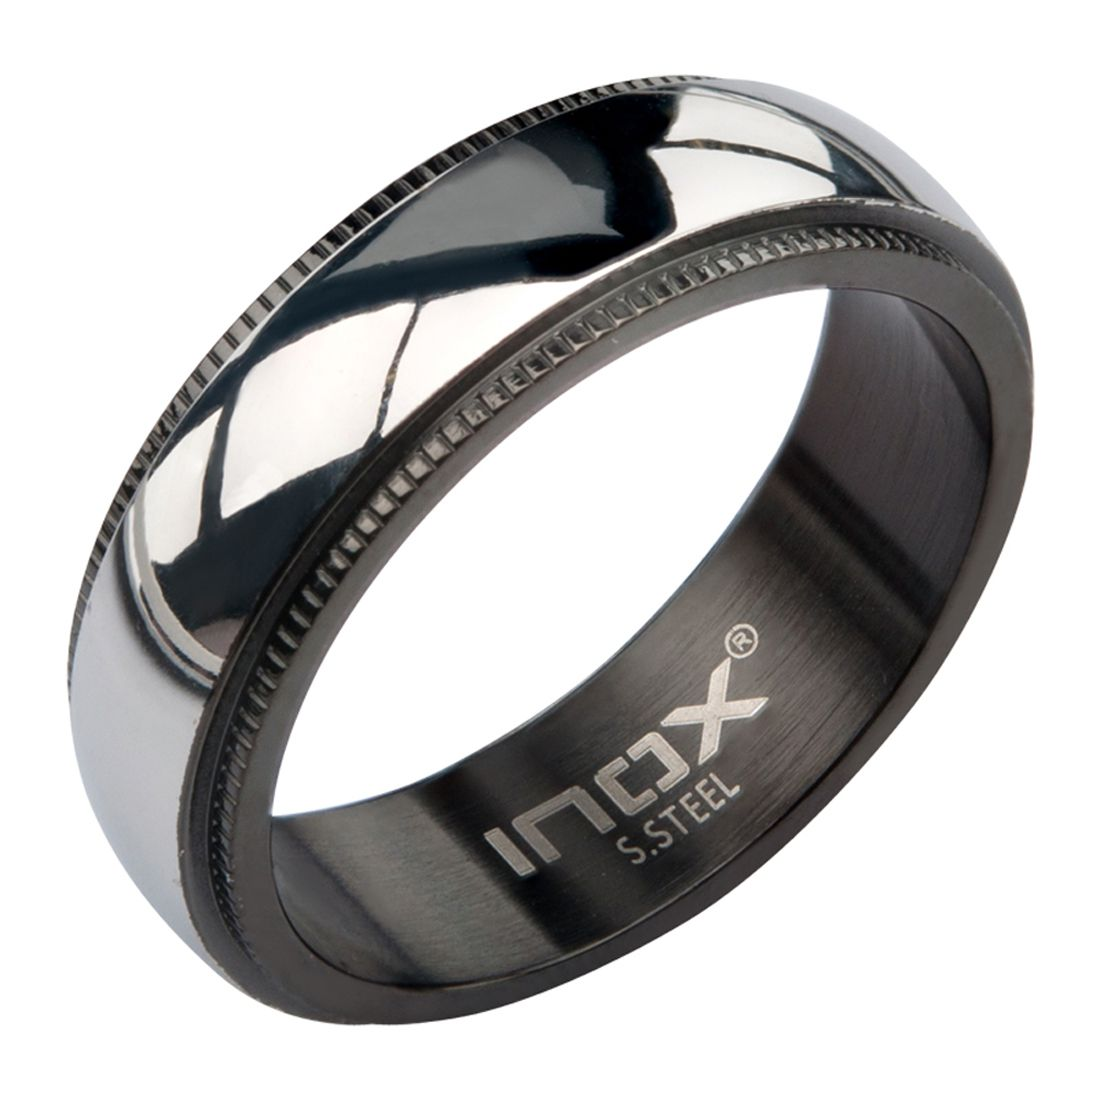 Inox Jewelry Black and Silver Stainless Steel Fancy Border Glossy Band